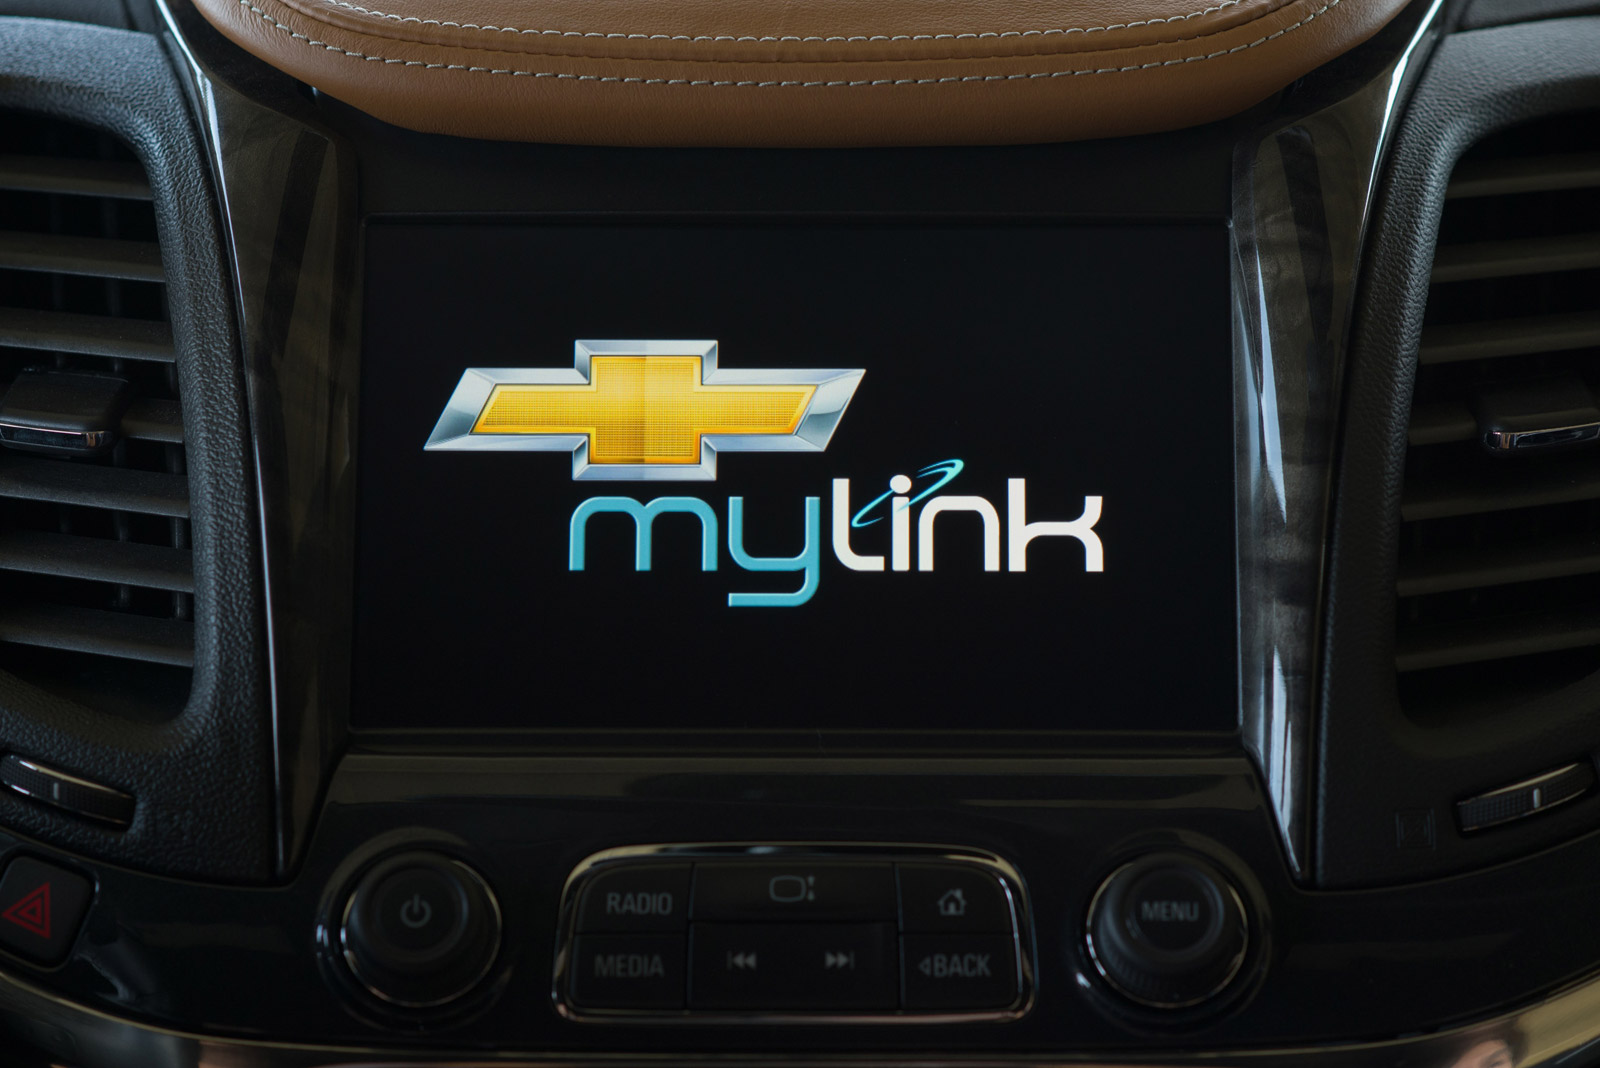 Chevy Announces Next-Gen MyLink Infotainment System: Video